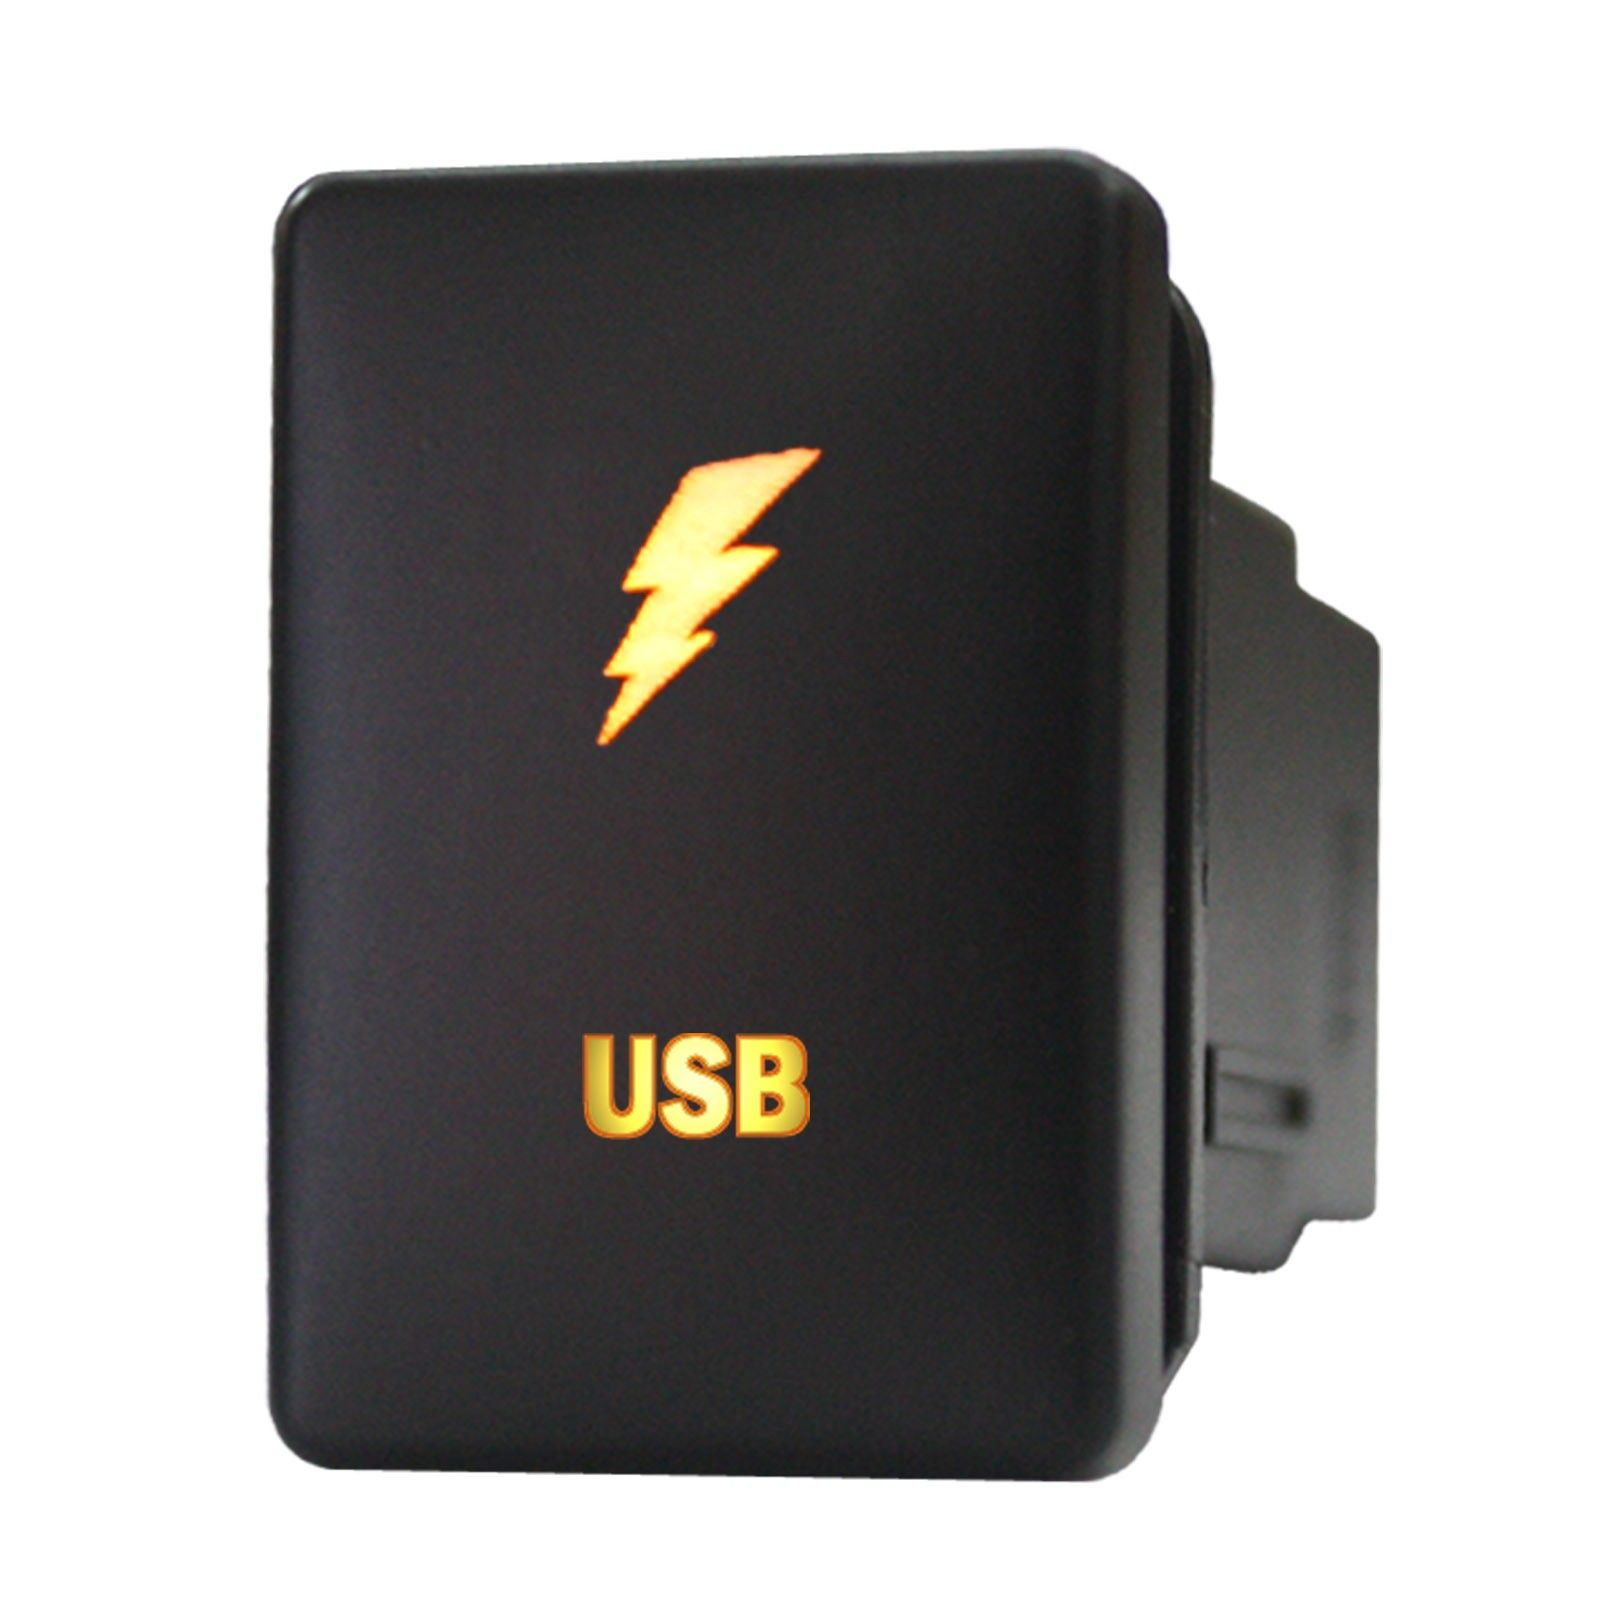 Push switch 9B46O 12volt Toyota OEM Replacement USB amber